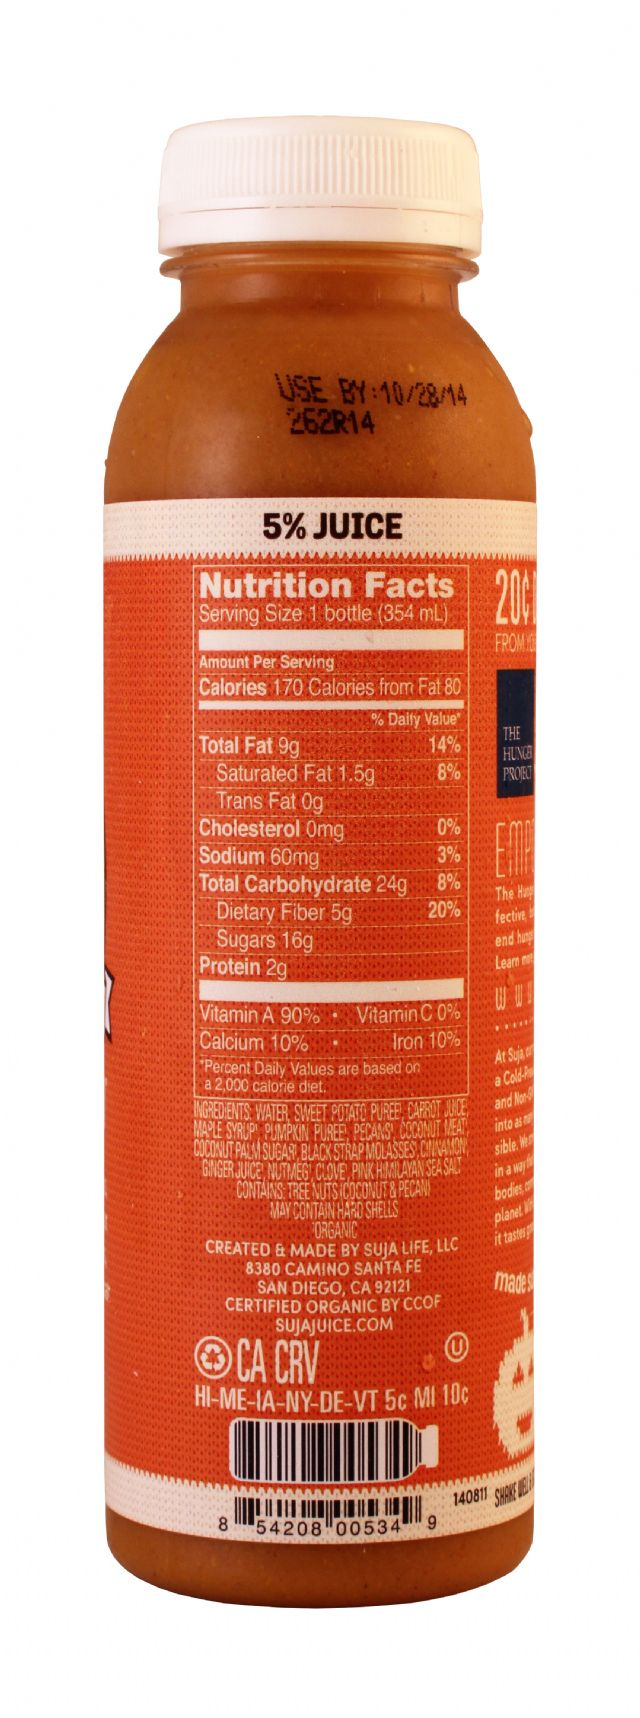 Suja Elements Holiday Edition: Suja CallMePumpkin Facts